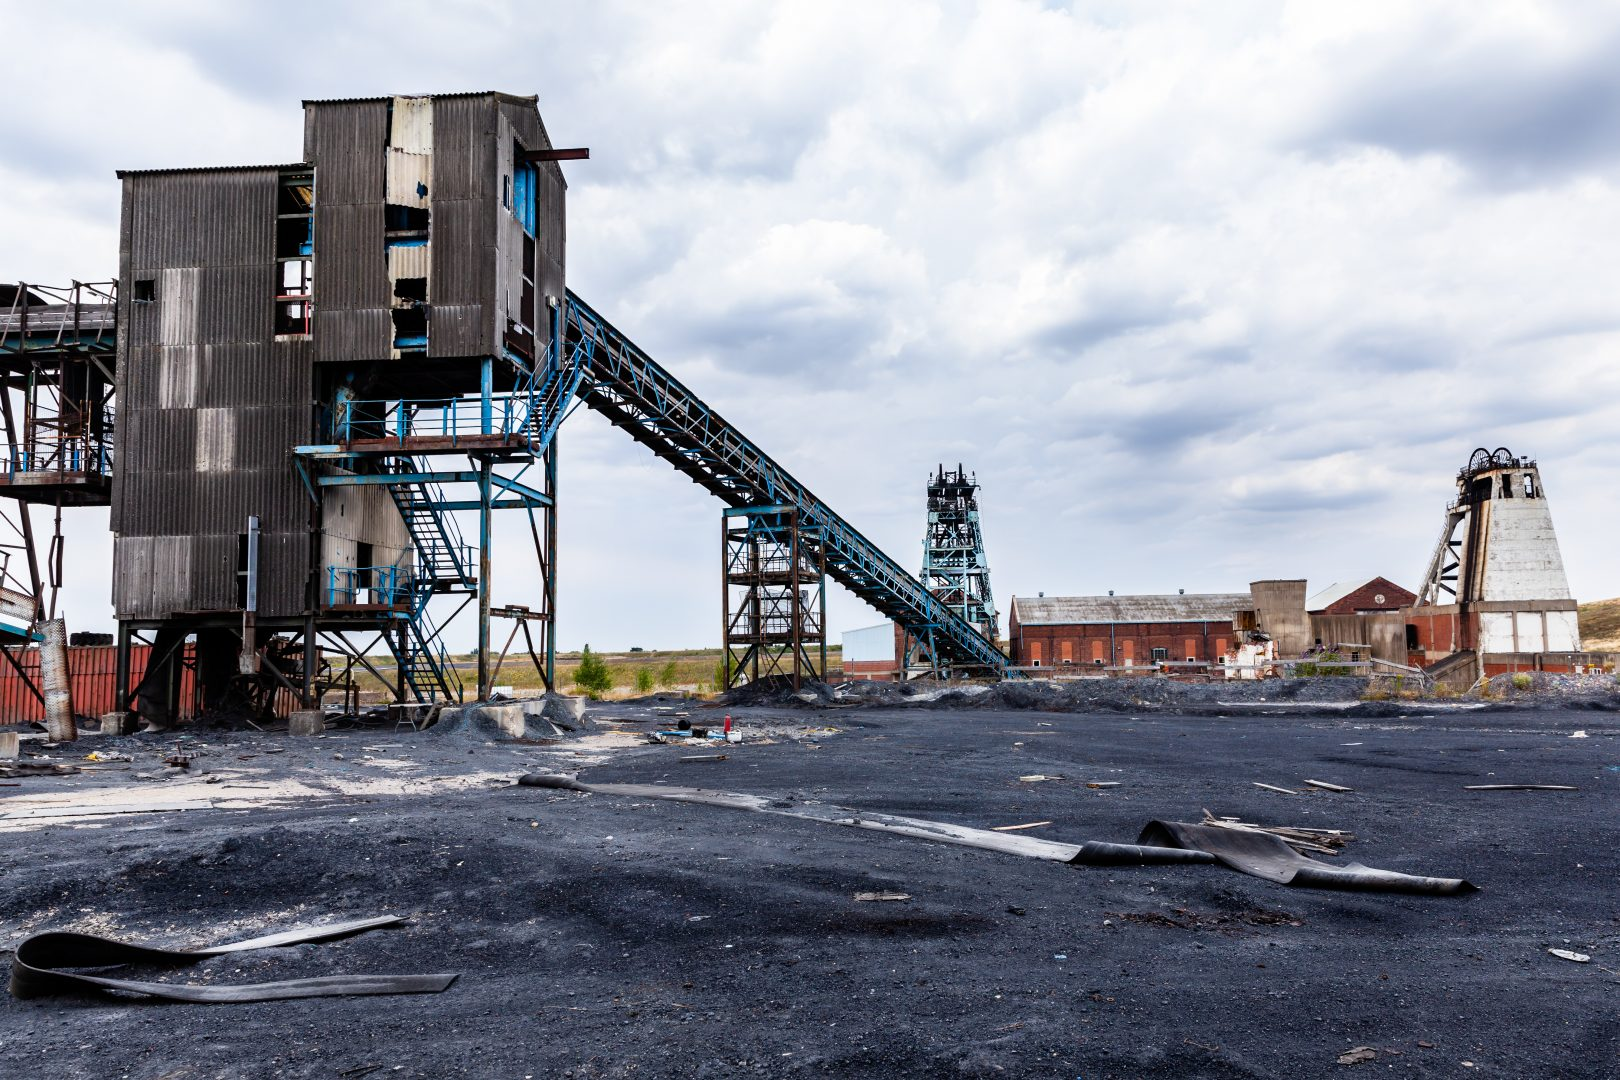 The National Coal Mining Museum